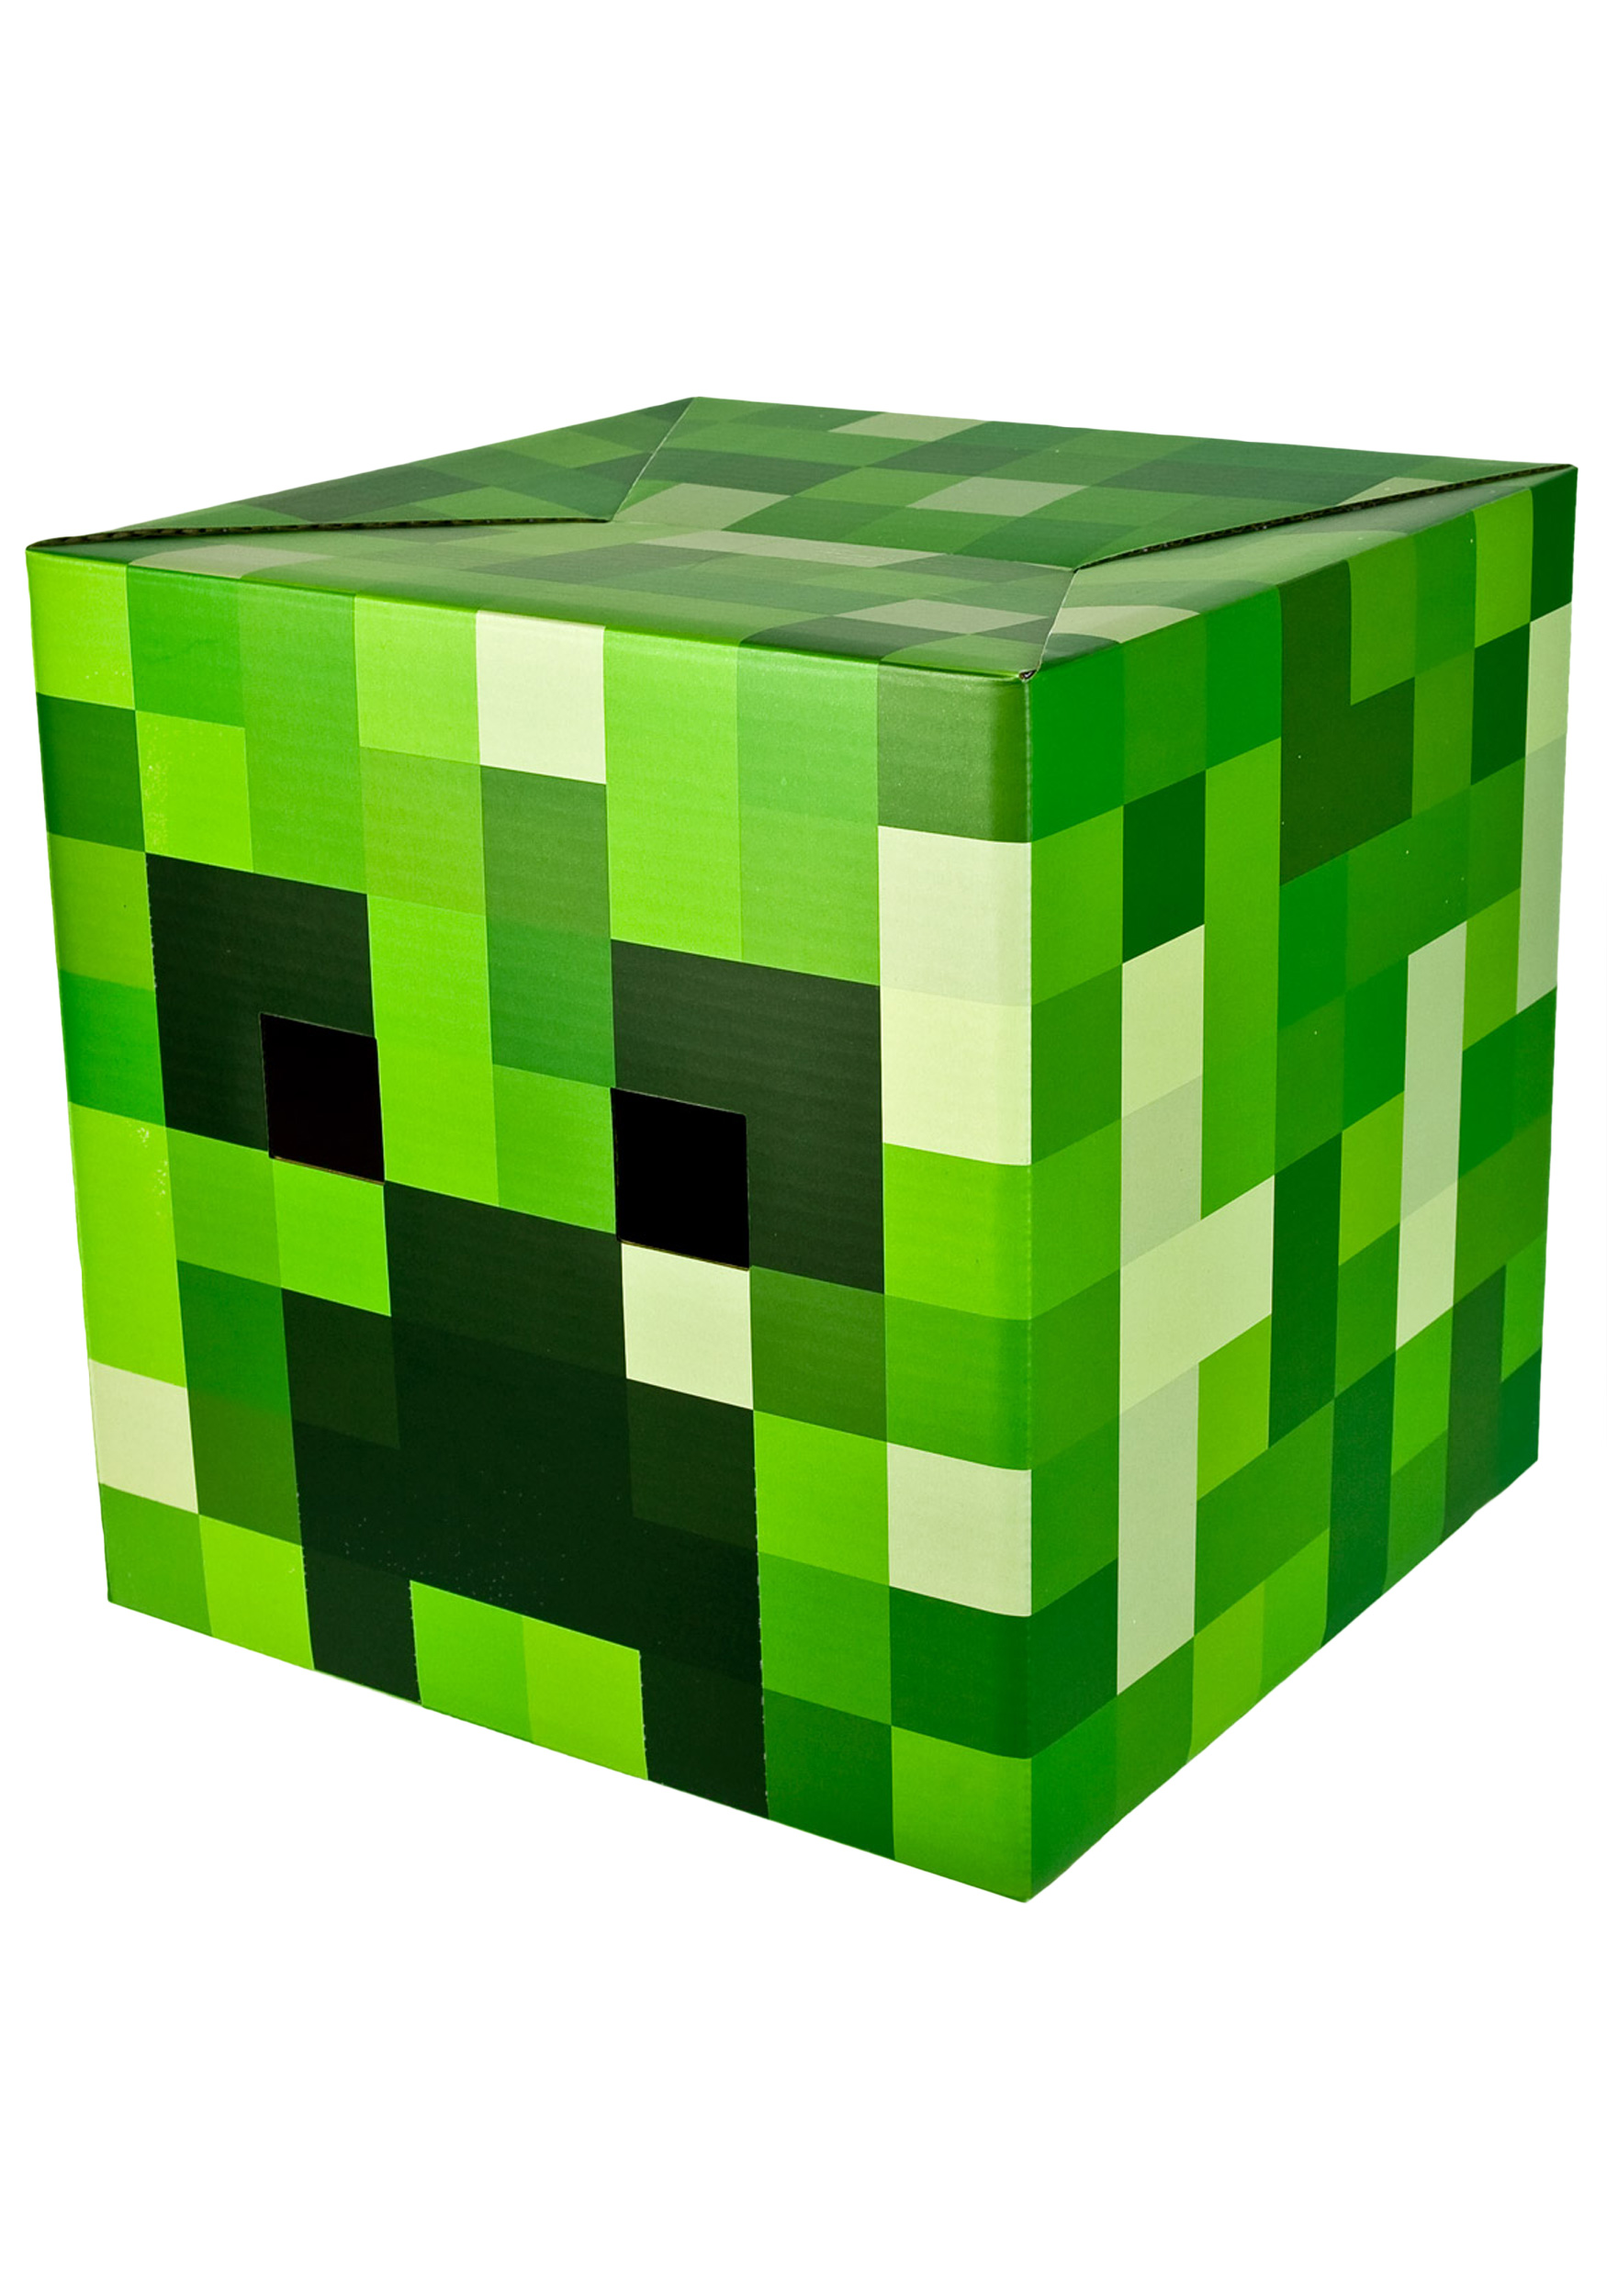 The Minecraft creeper Creeper